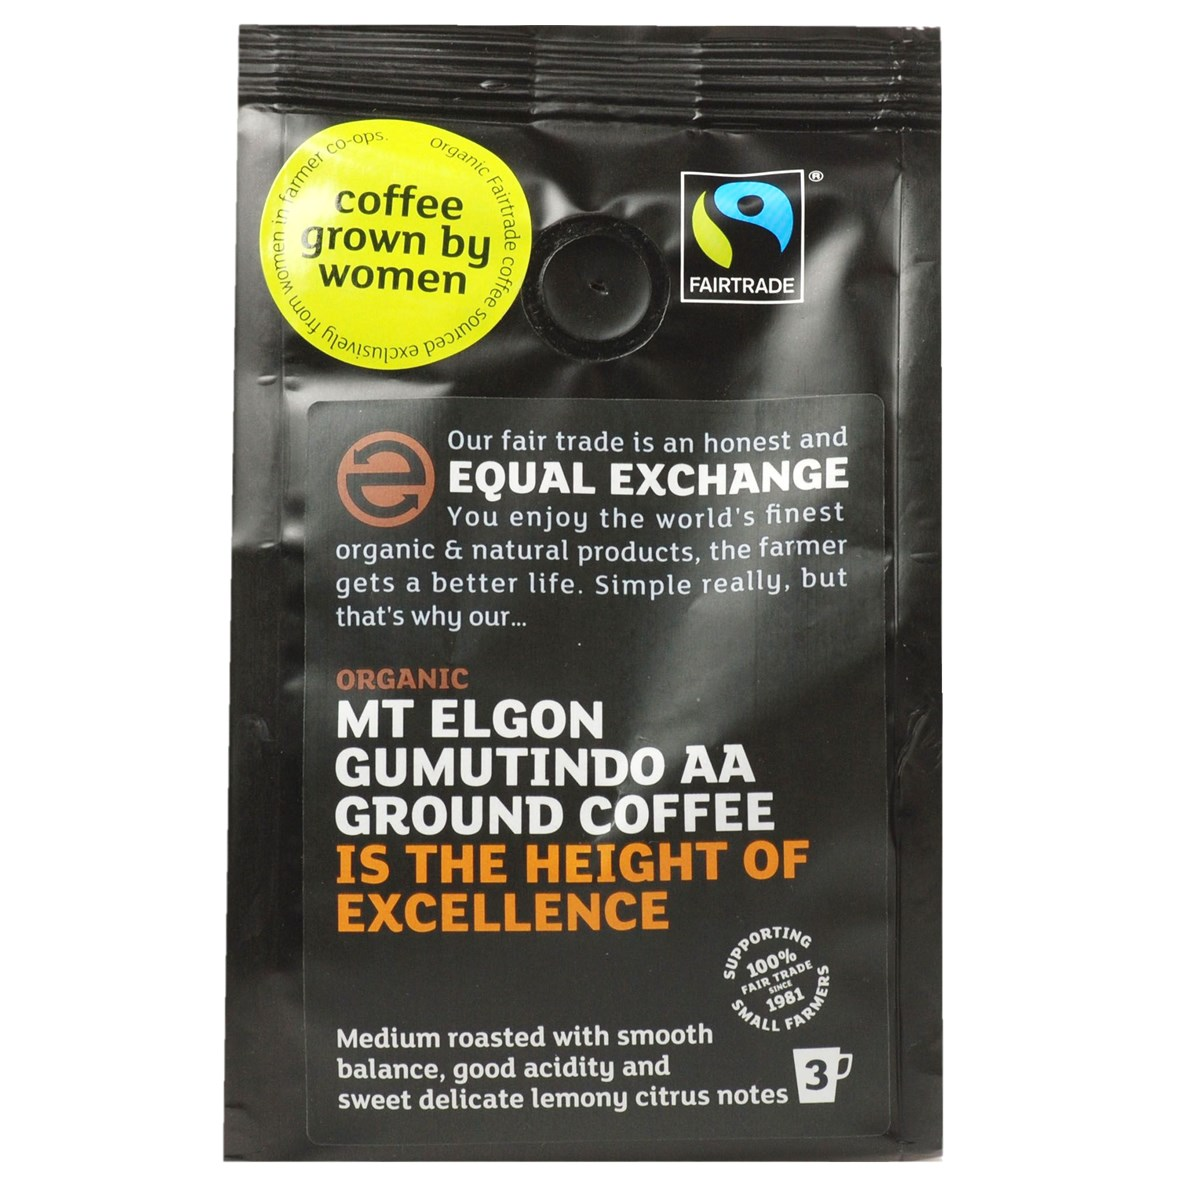 Equal Exchange Organic Fairtrade MT Elgon Gumutindo Ground Coffee